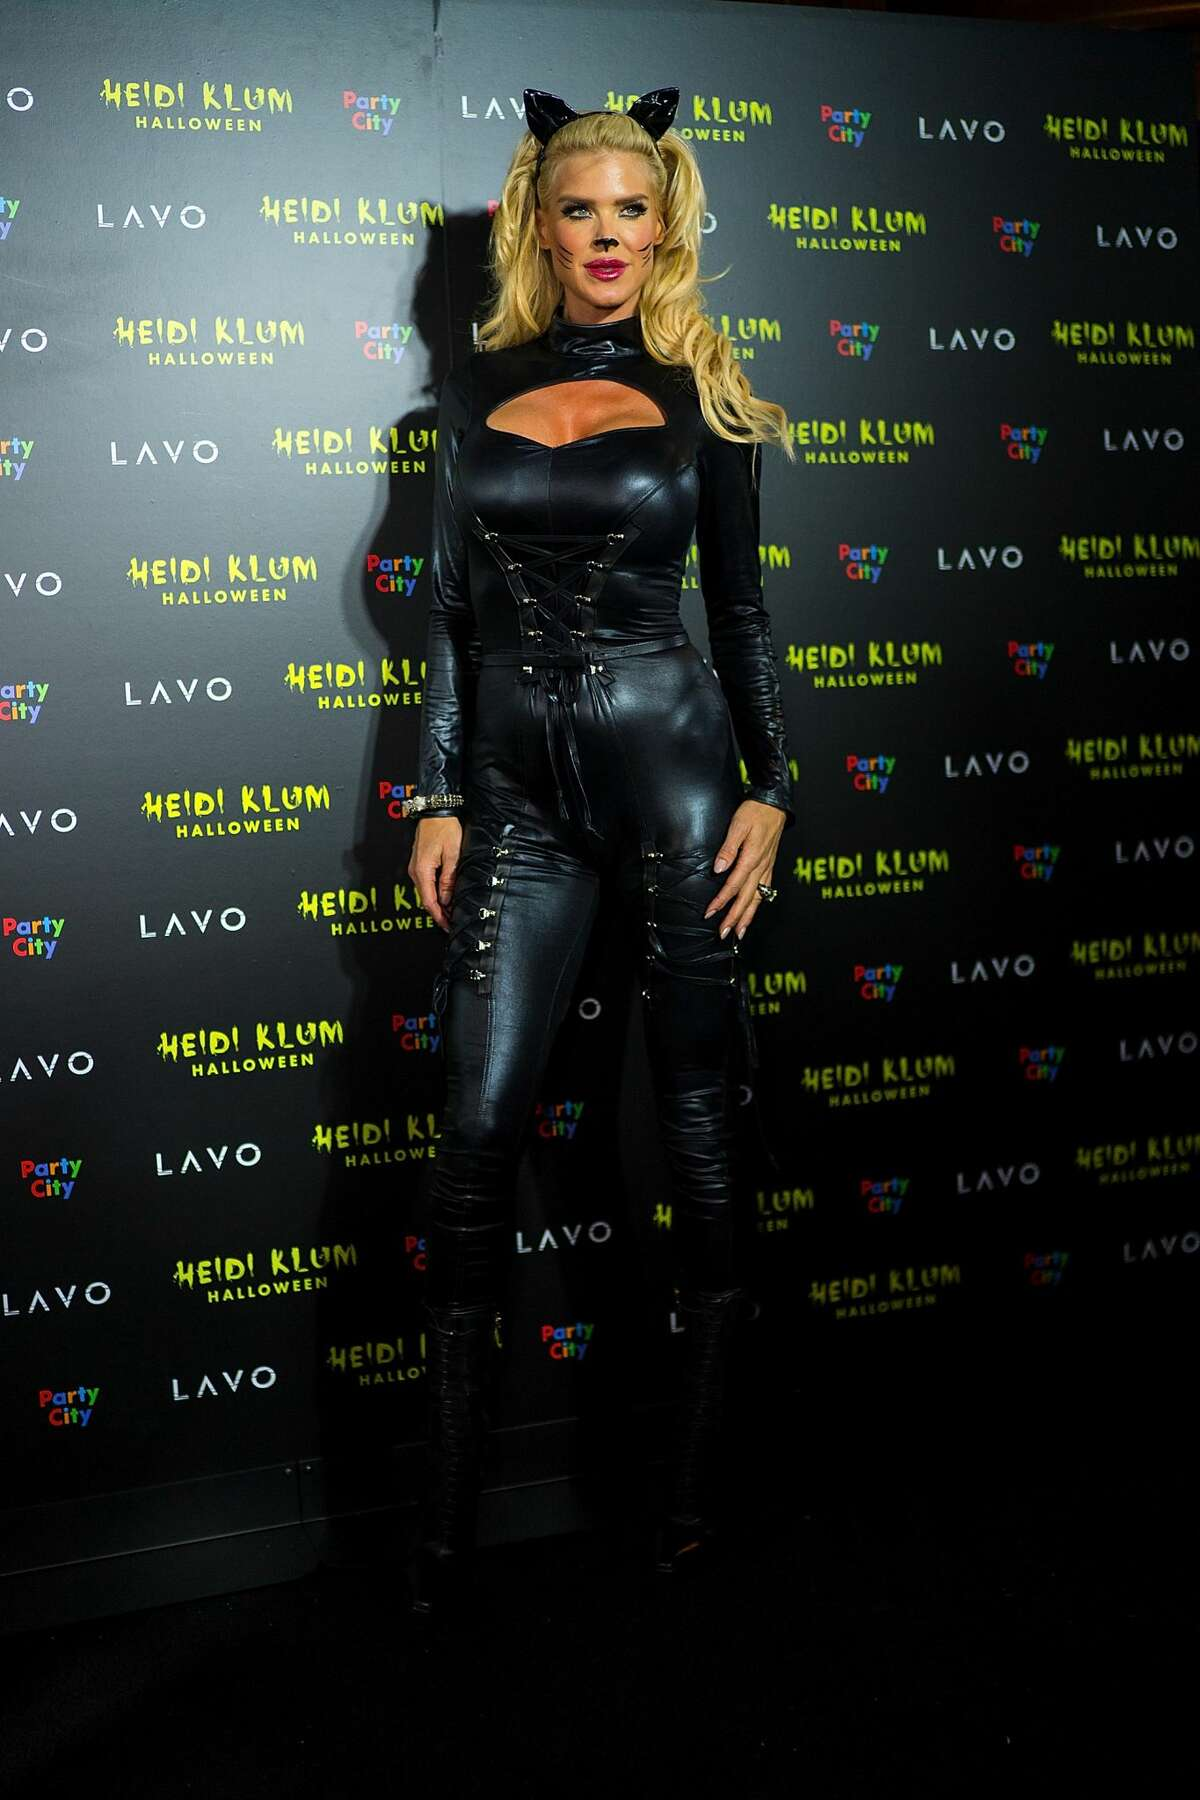 Victoria Silvstedt attends Heidi Klum's 19th Annual Halloween party at Lavo on October 31, 2018 in New York City. (Photo by TheStewartofNY/WireImage)